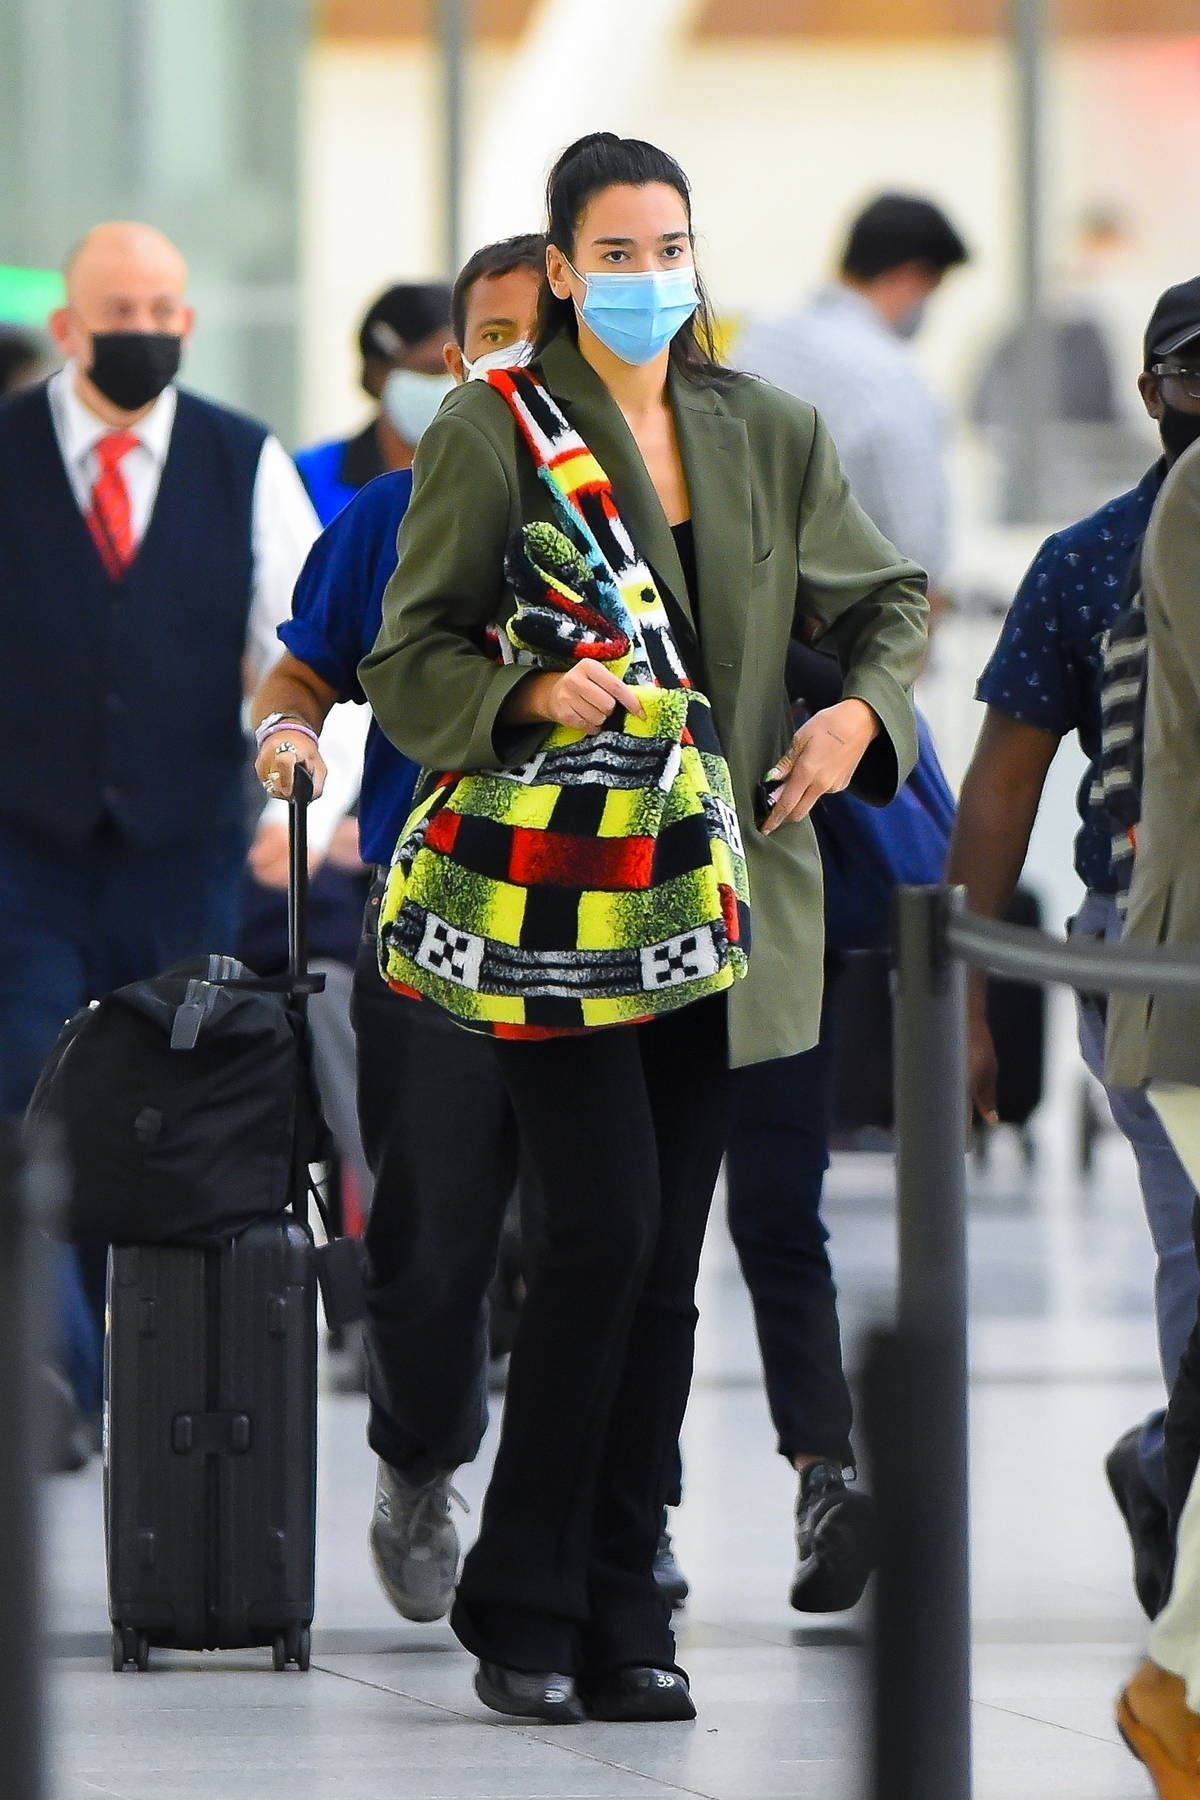 Dua Lipa spotted in a green blazer and colorful tote as she touches down at JFK airport in New York City